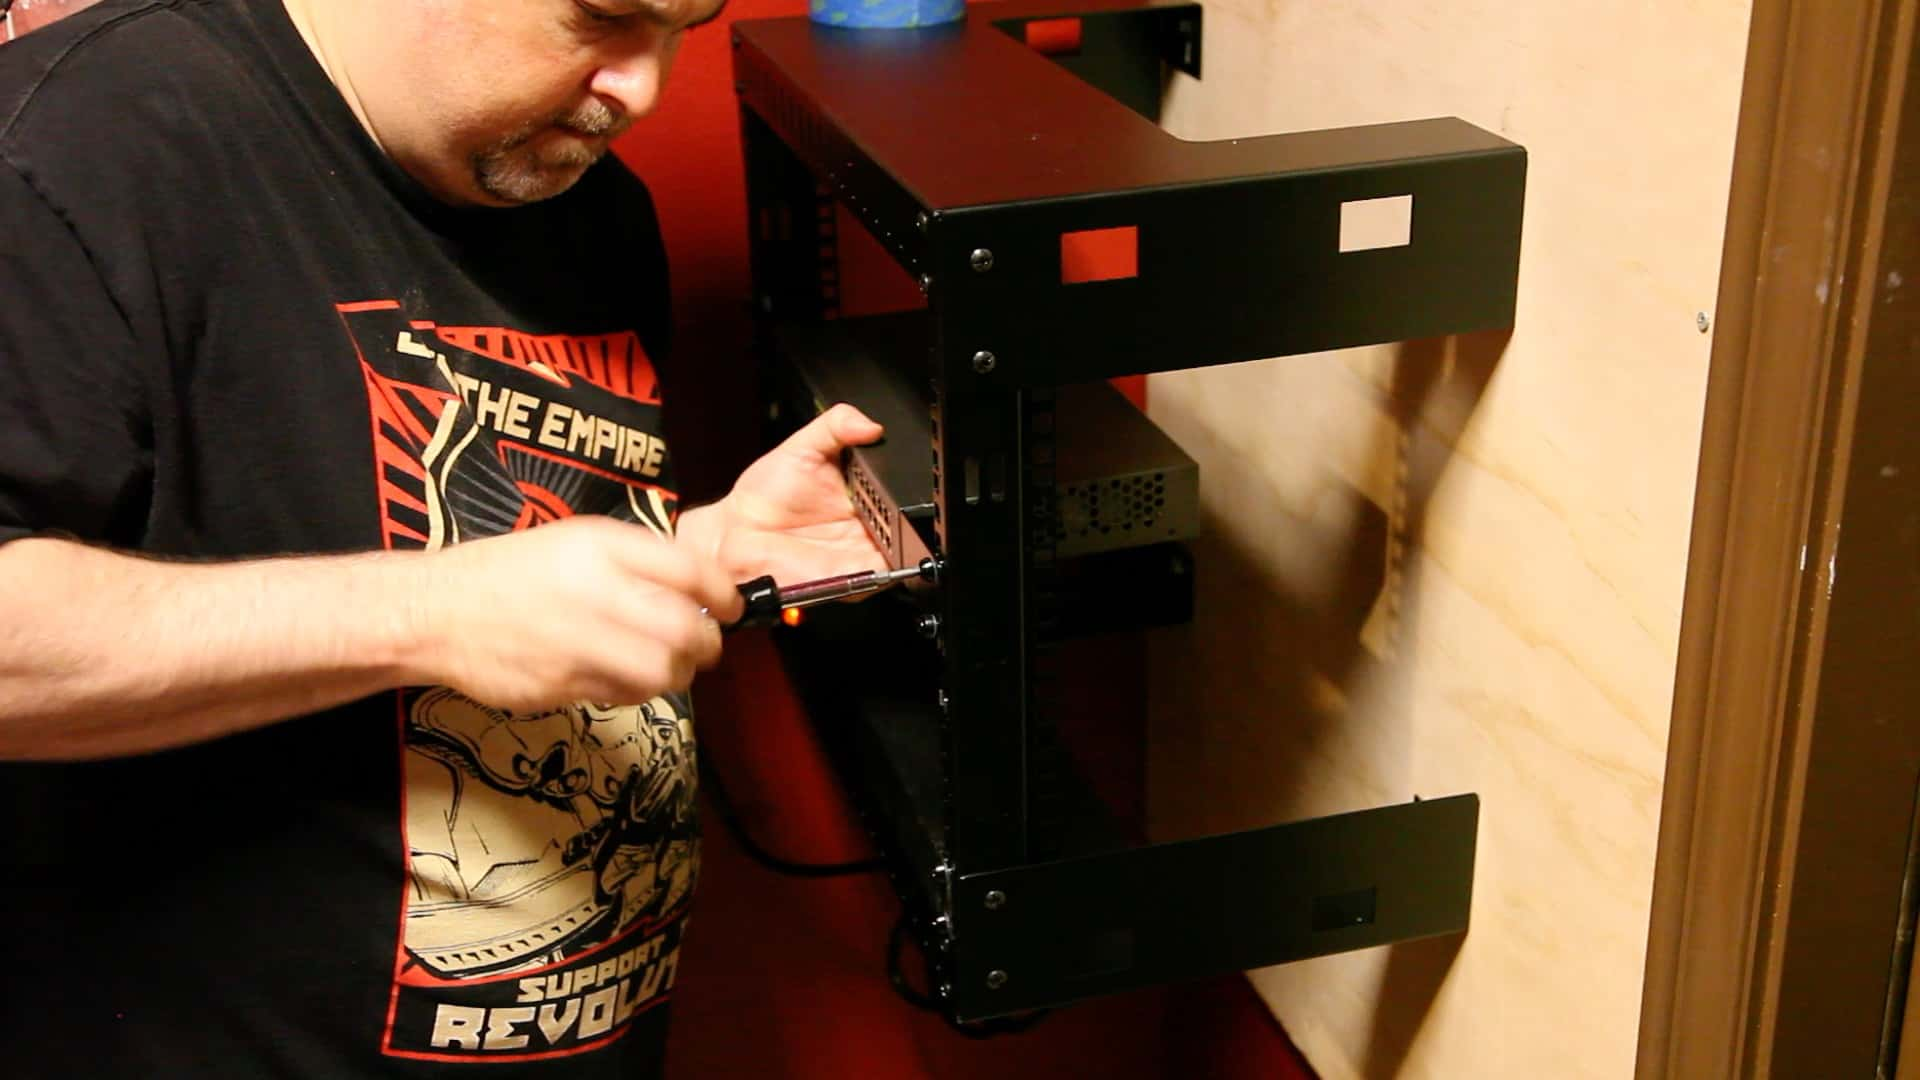 Installing A 19 Network Rack At Home The Geek Pub Whole House Structured Wiring Networking Setups Cabinets Panels 0007